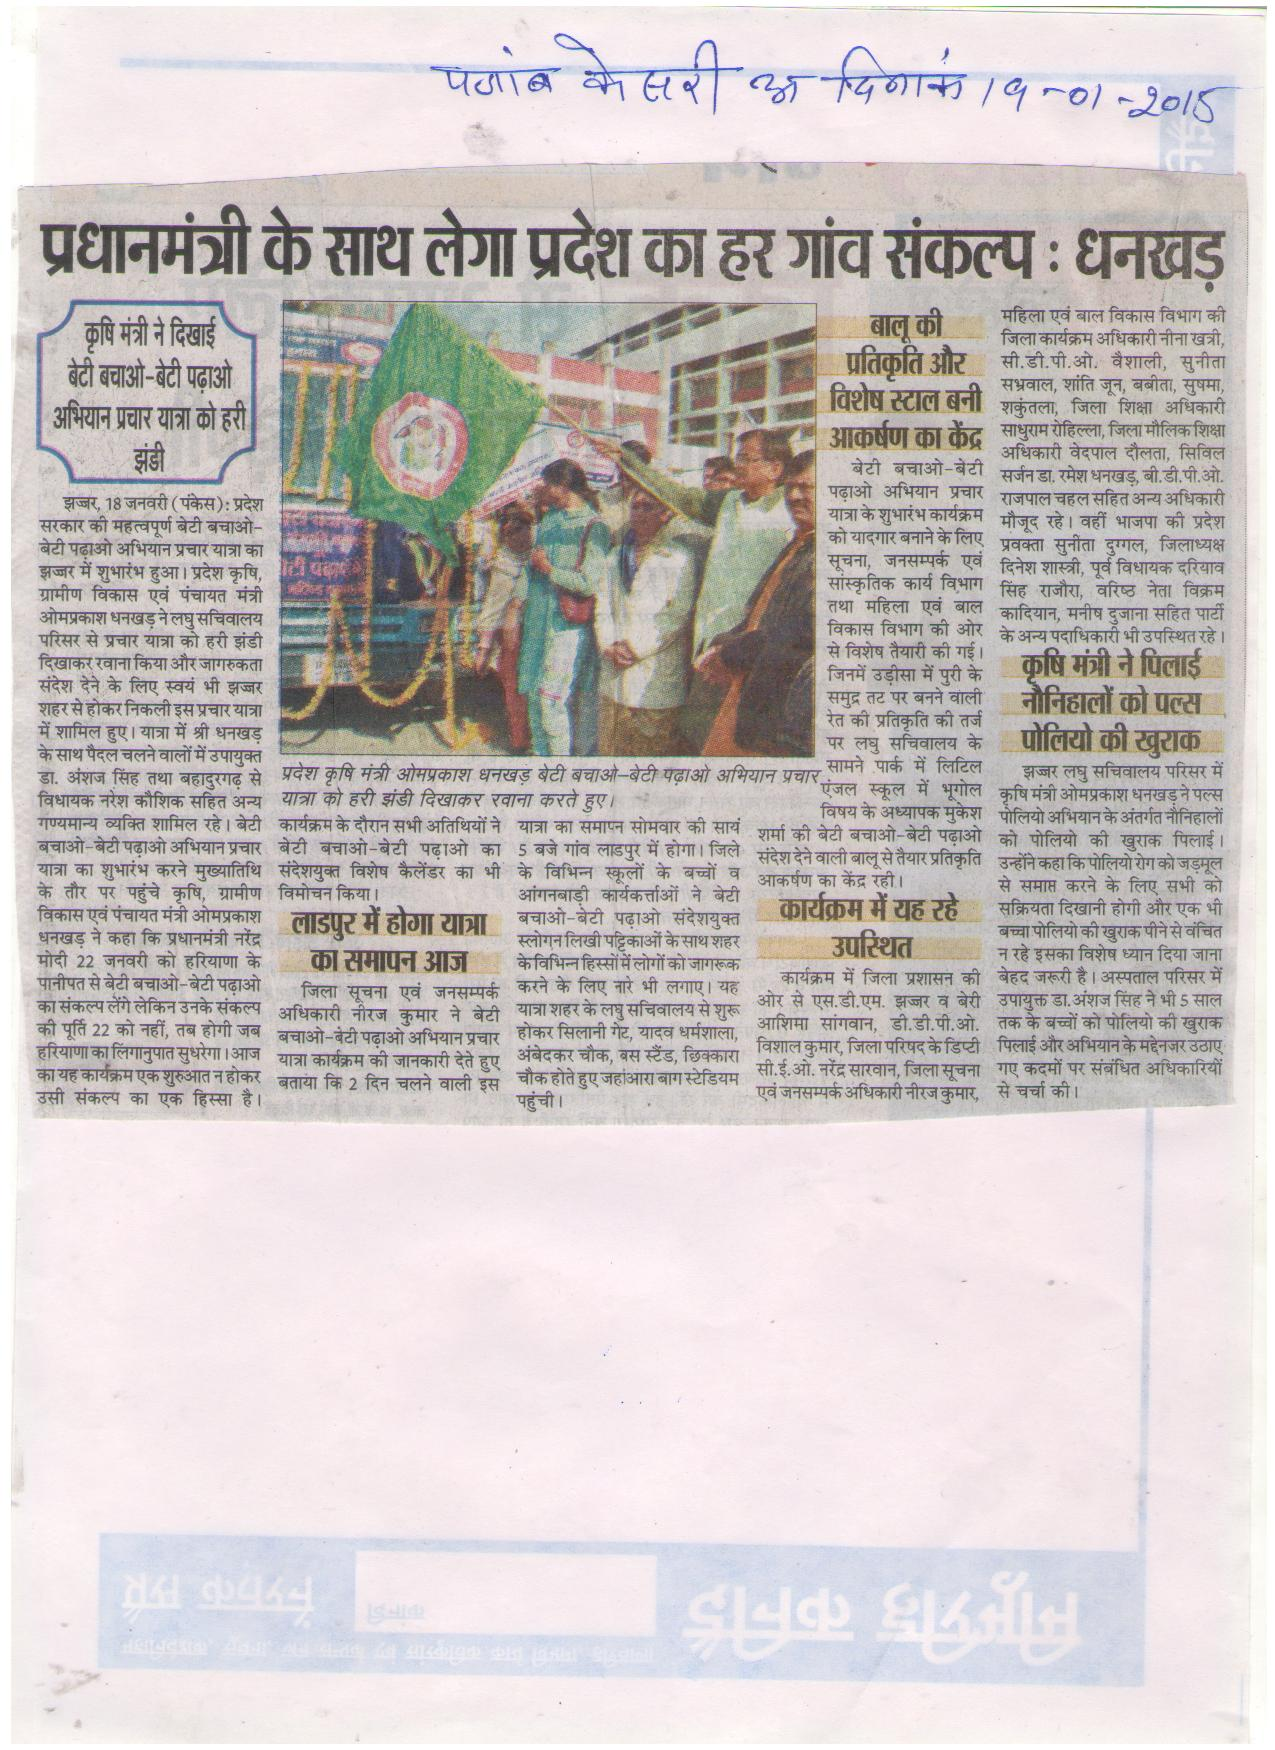 News Clipping regarding Beti Bachao-Beti Padhao - Photo 7